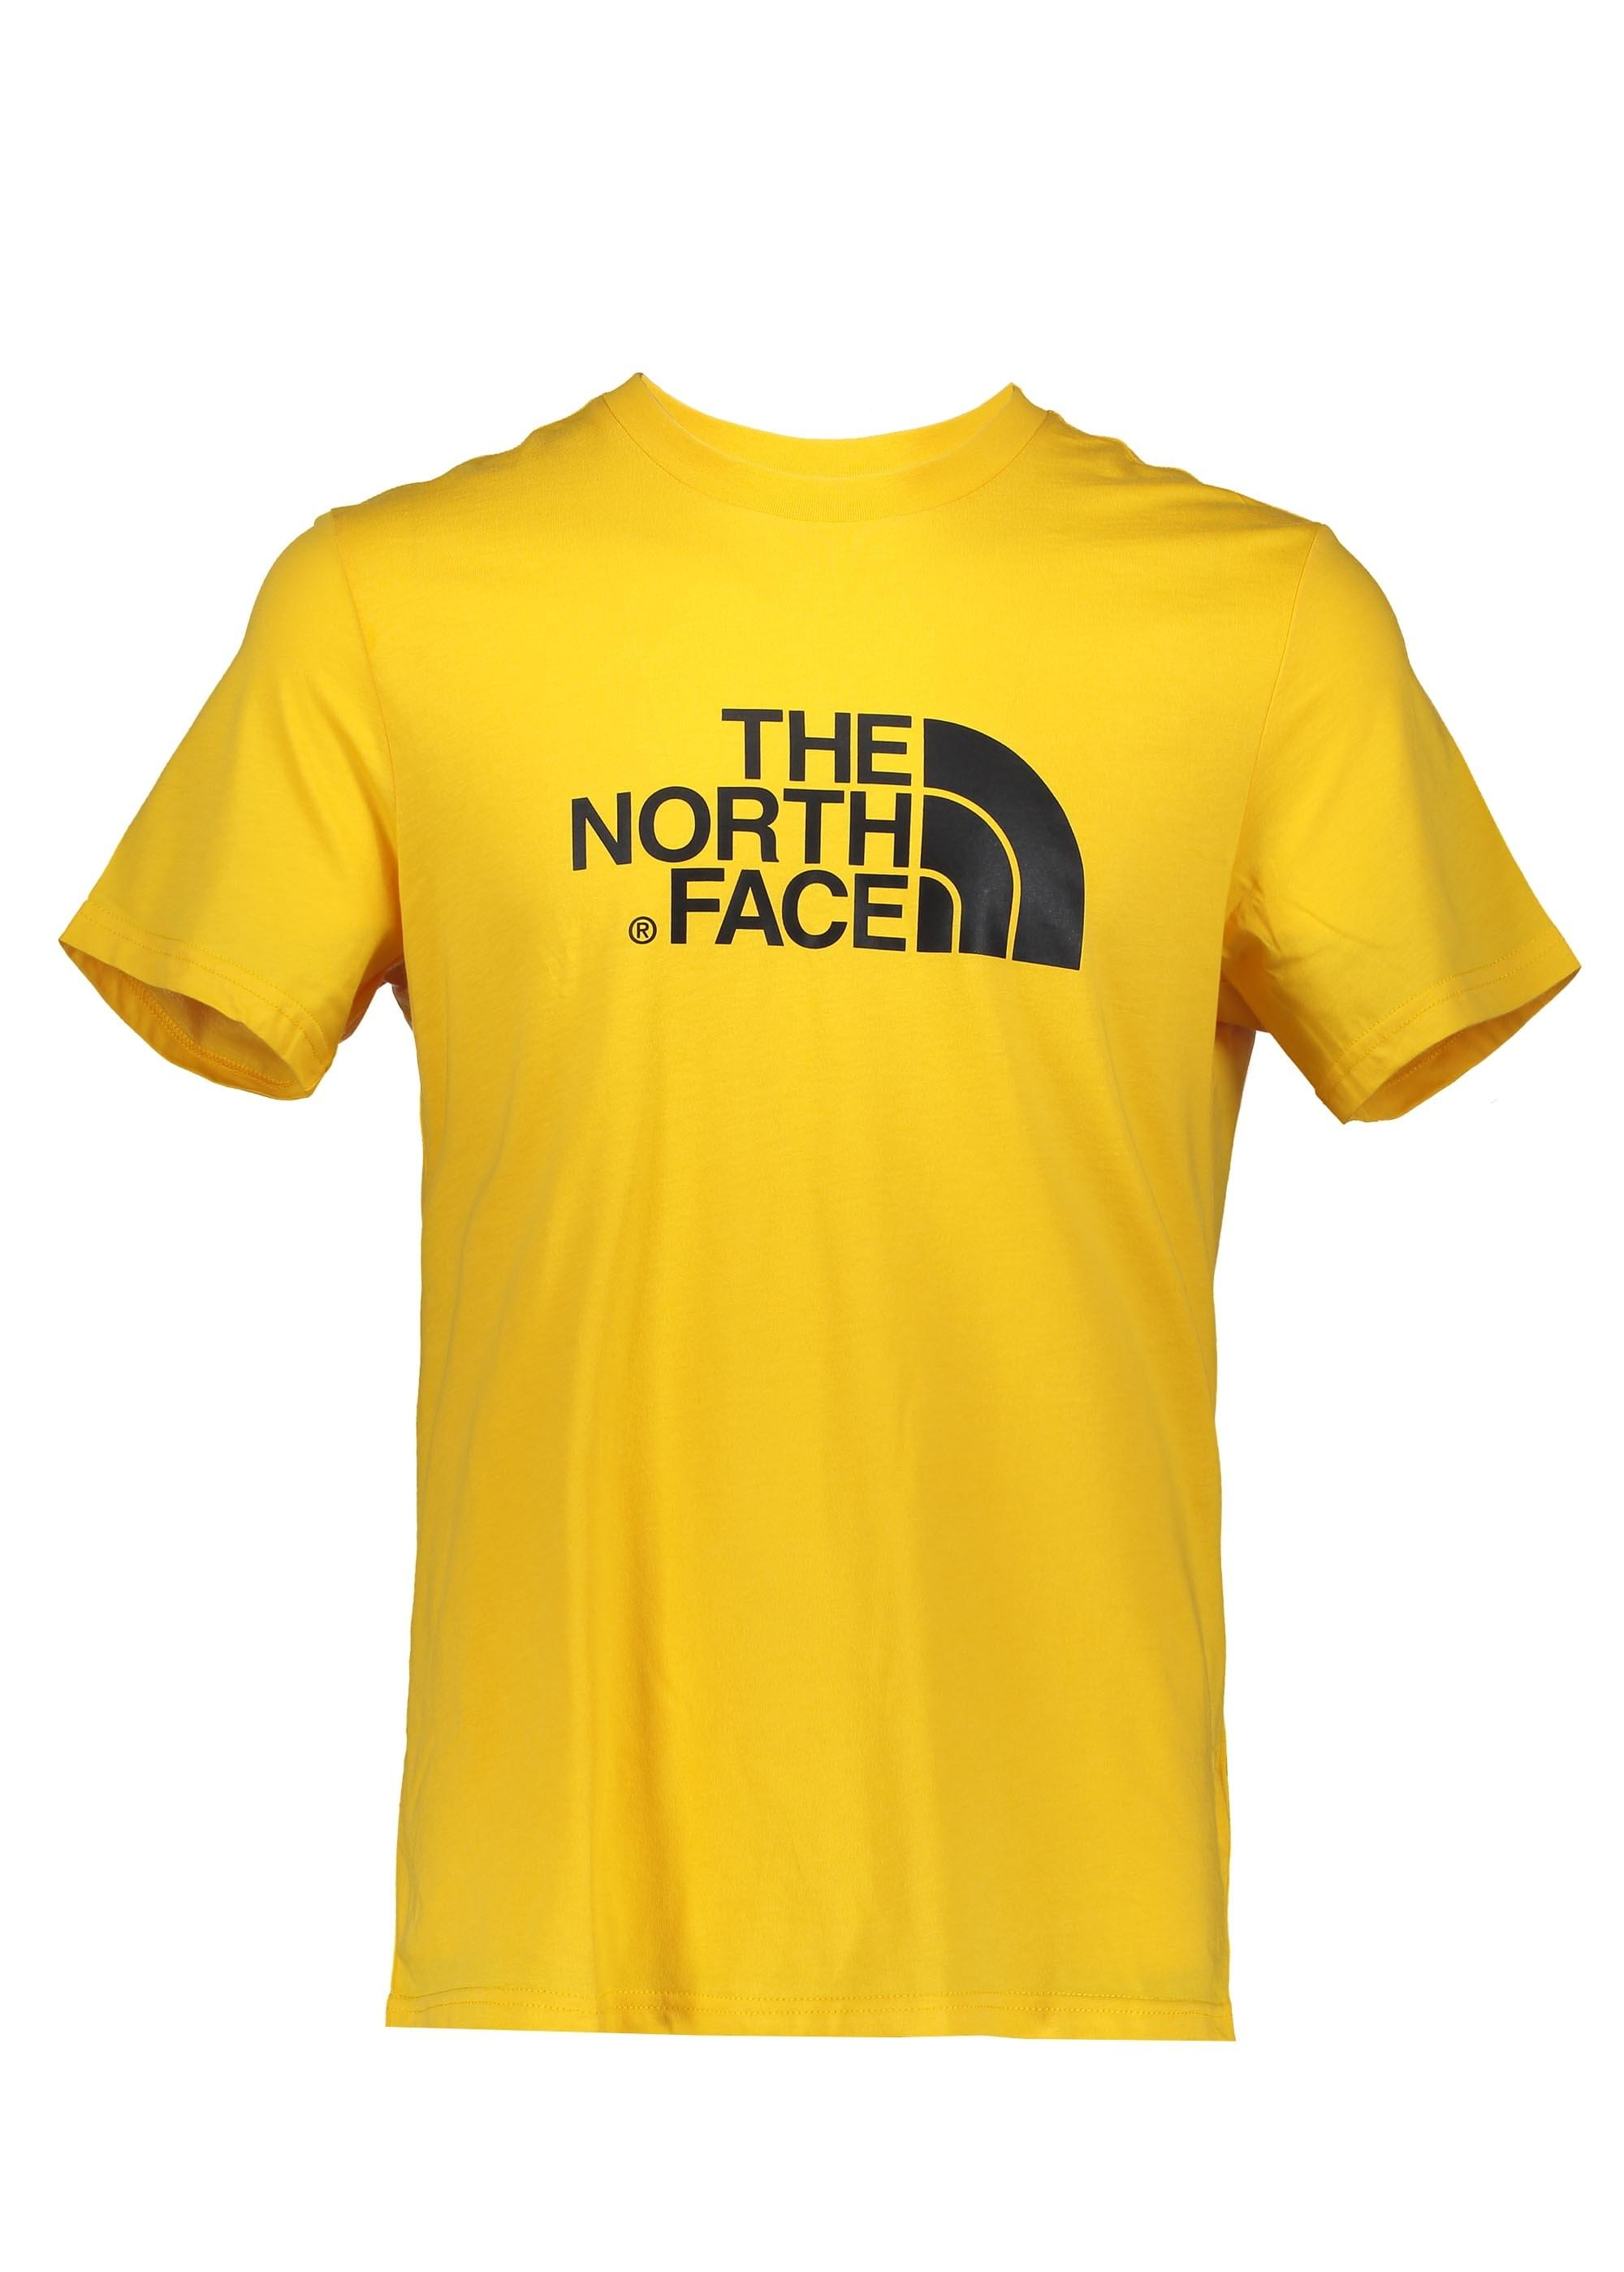 The North Face SS Easy Tee - Yellow - T-shirts from Triads UK